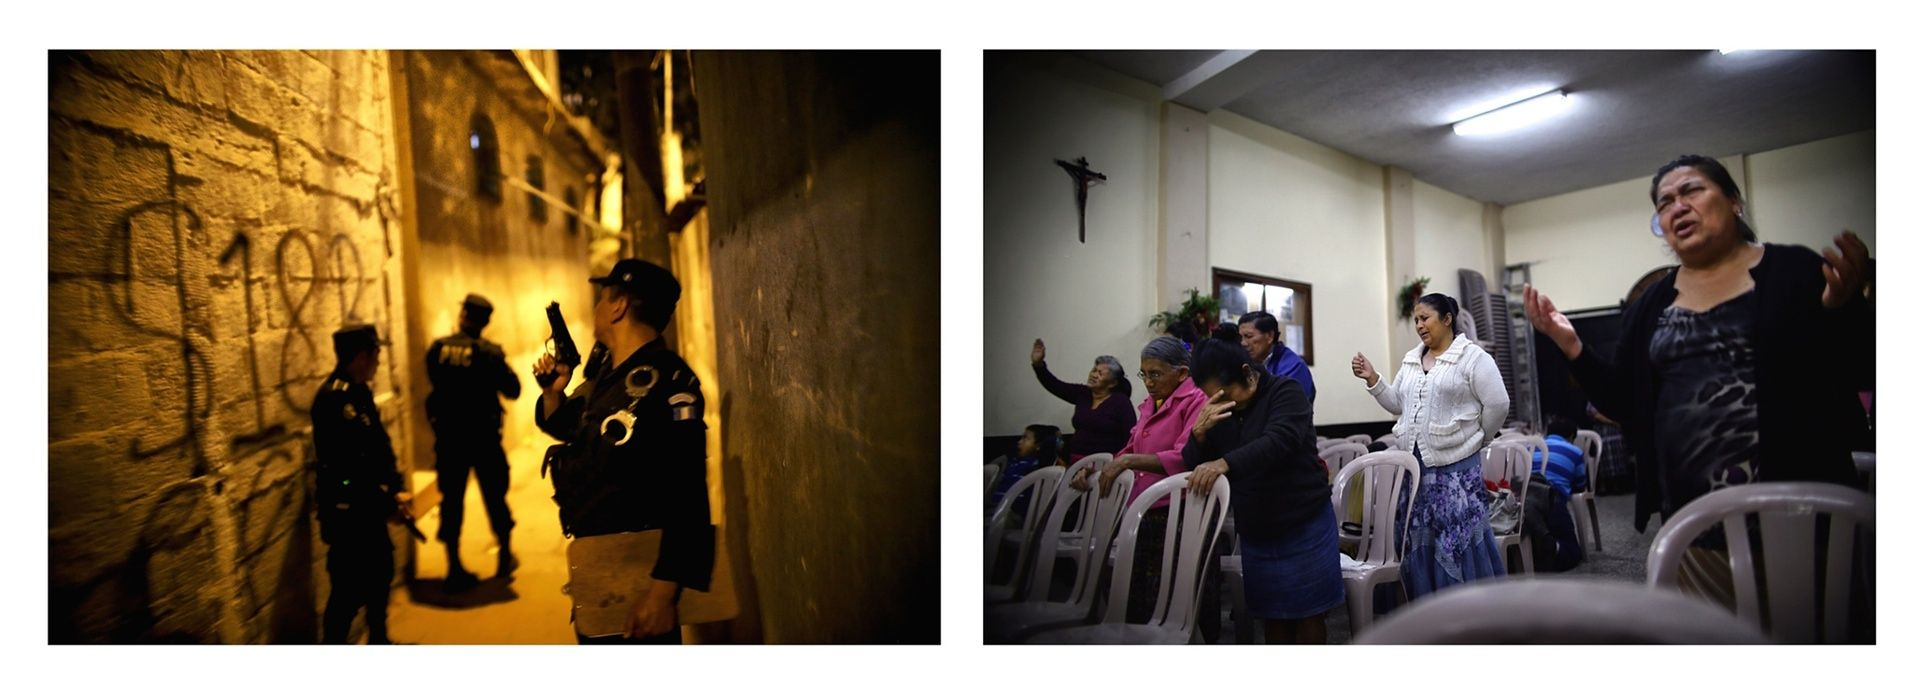 Left: Guatemalan police take part in a night raid in Barrio Limon, Zone 18. Right: Not far away, evangelical church-goers gather for evening prayer. Religion plays a central role in daily life in Guatemala City – even among the violent gangs of MS-13 and Calle 18, the motto is: 'For God, for my mother, for my gang.'